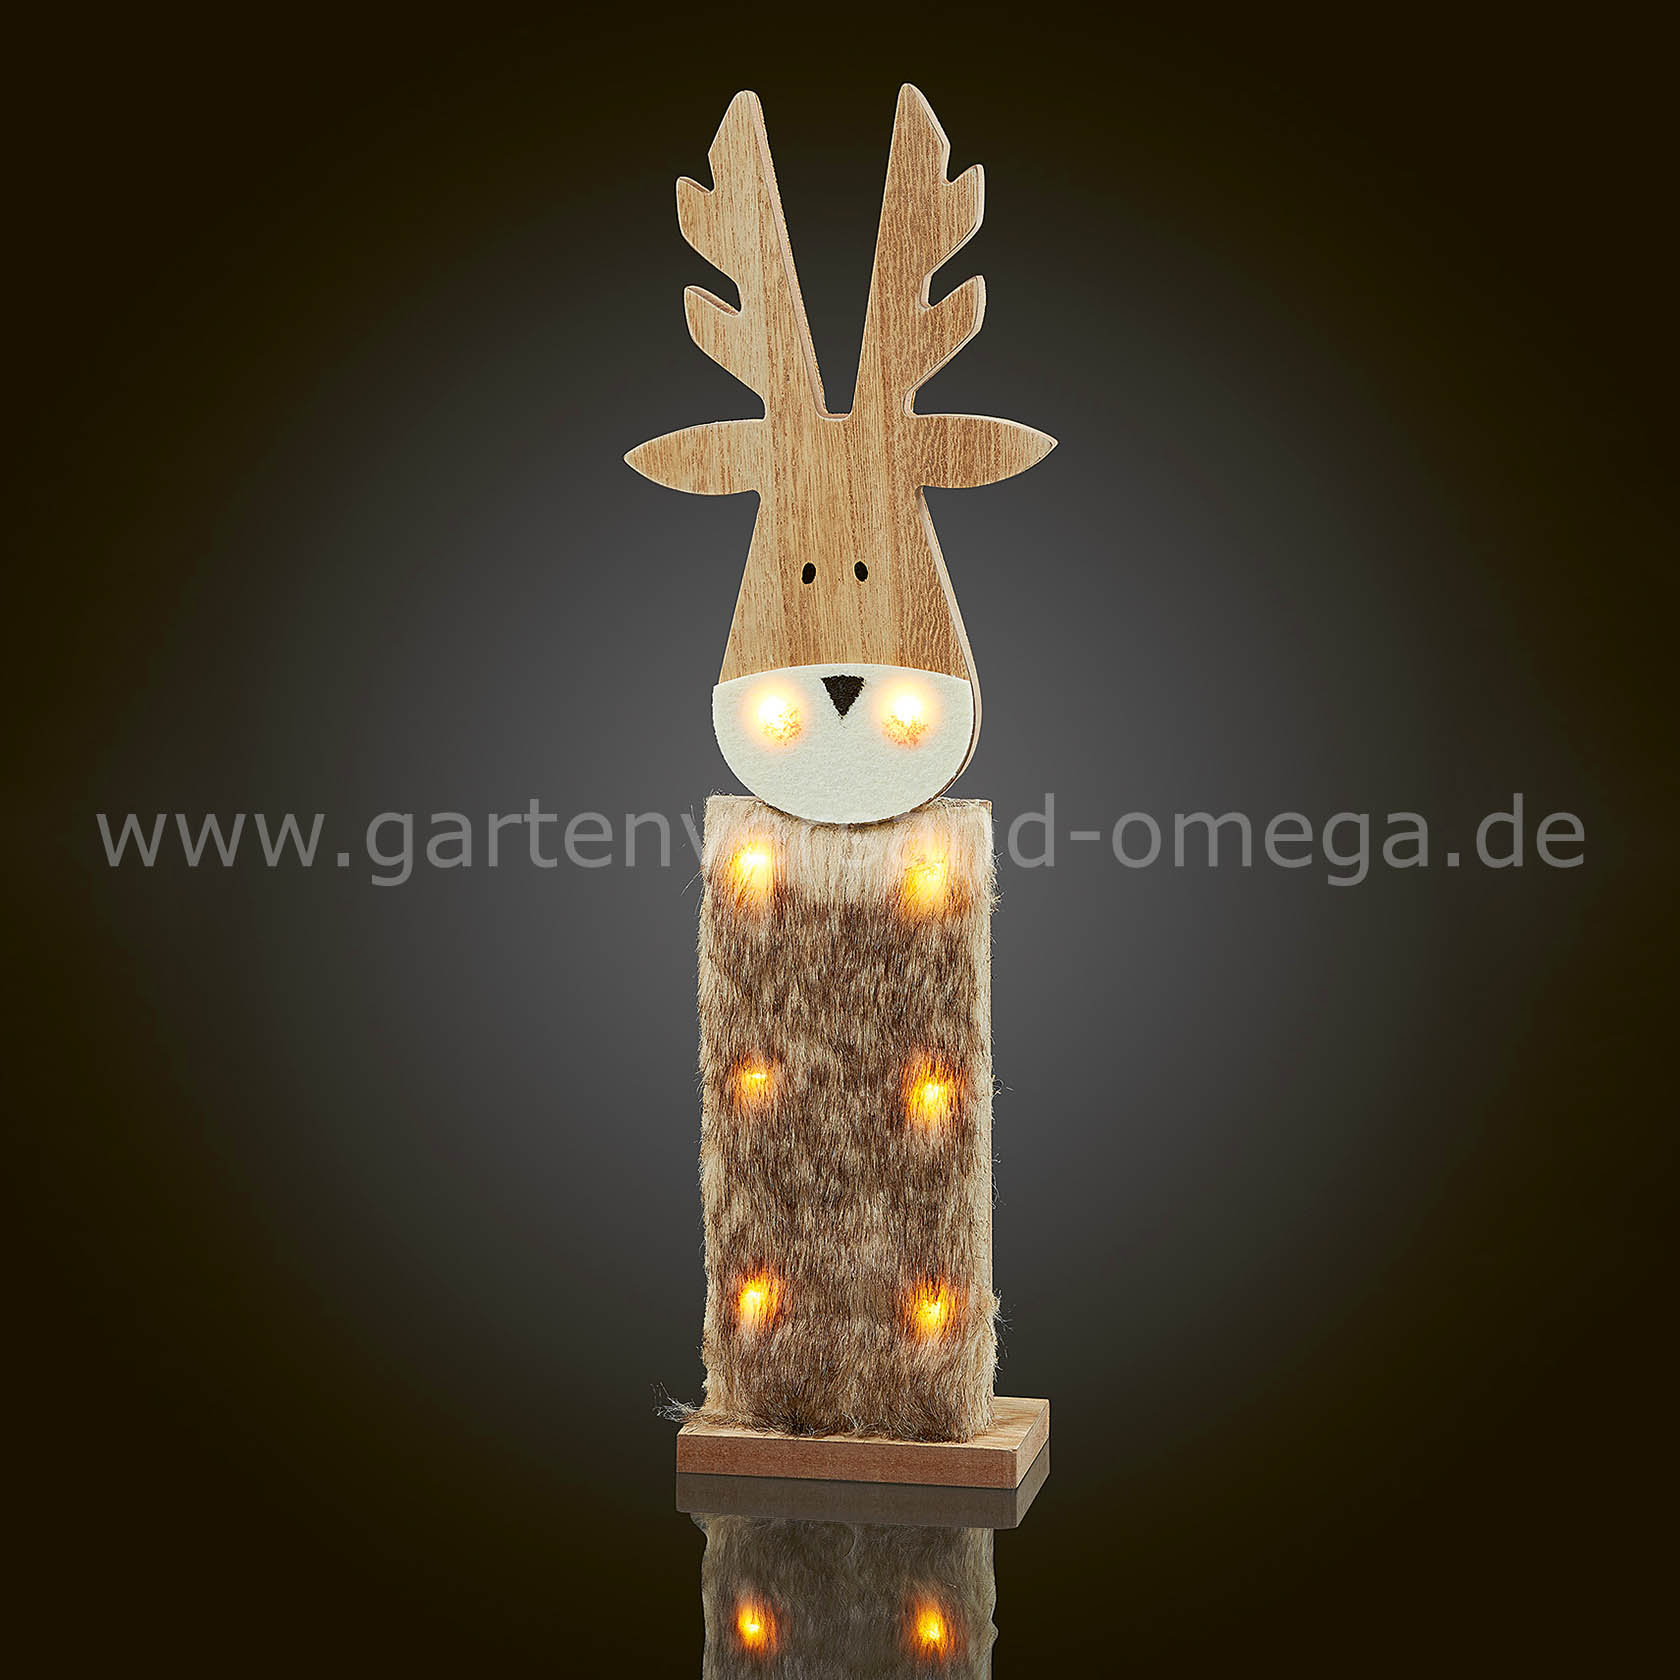 led holzrentier batteriebetriebene weihnachtsbeleuchtung. Black Bedroom Furniture Sets. Home Design Ideas